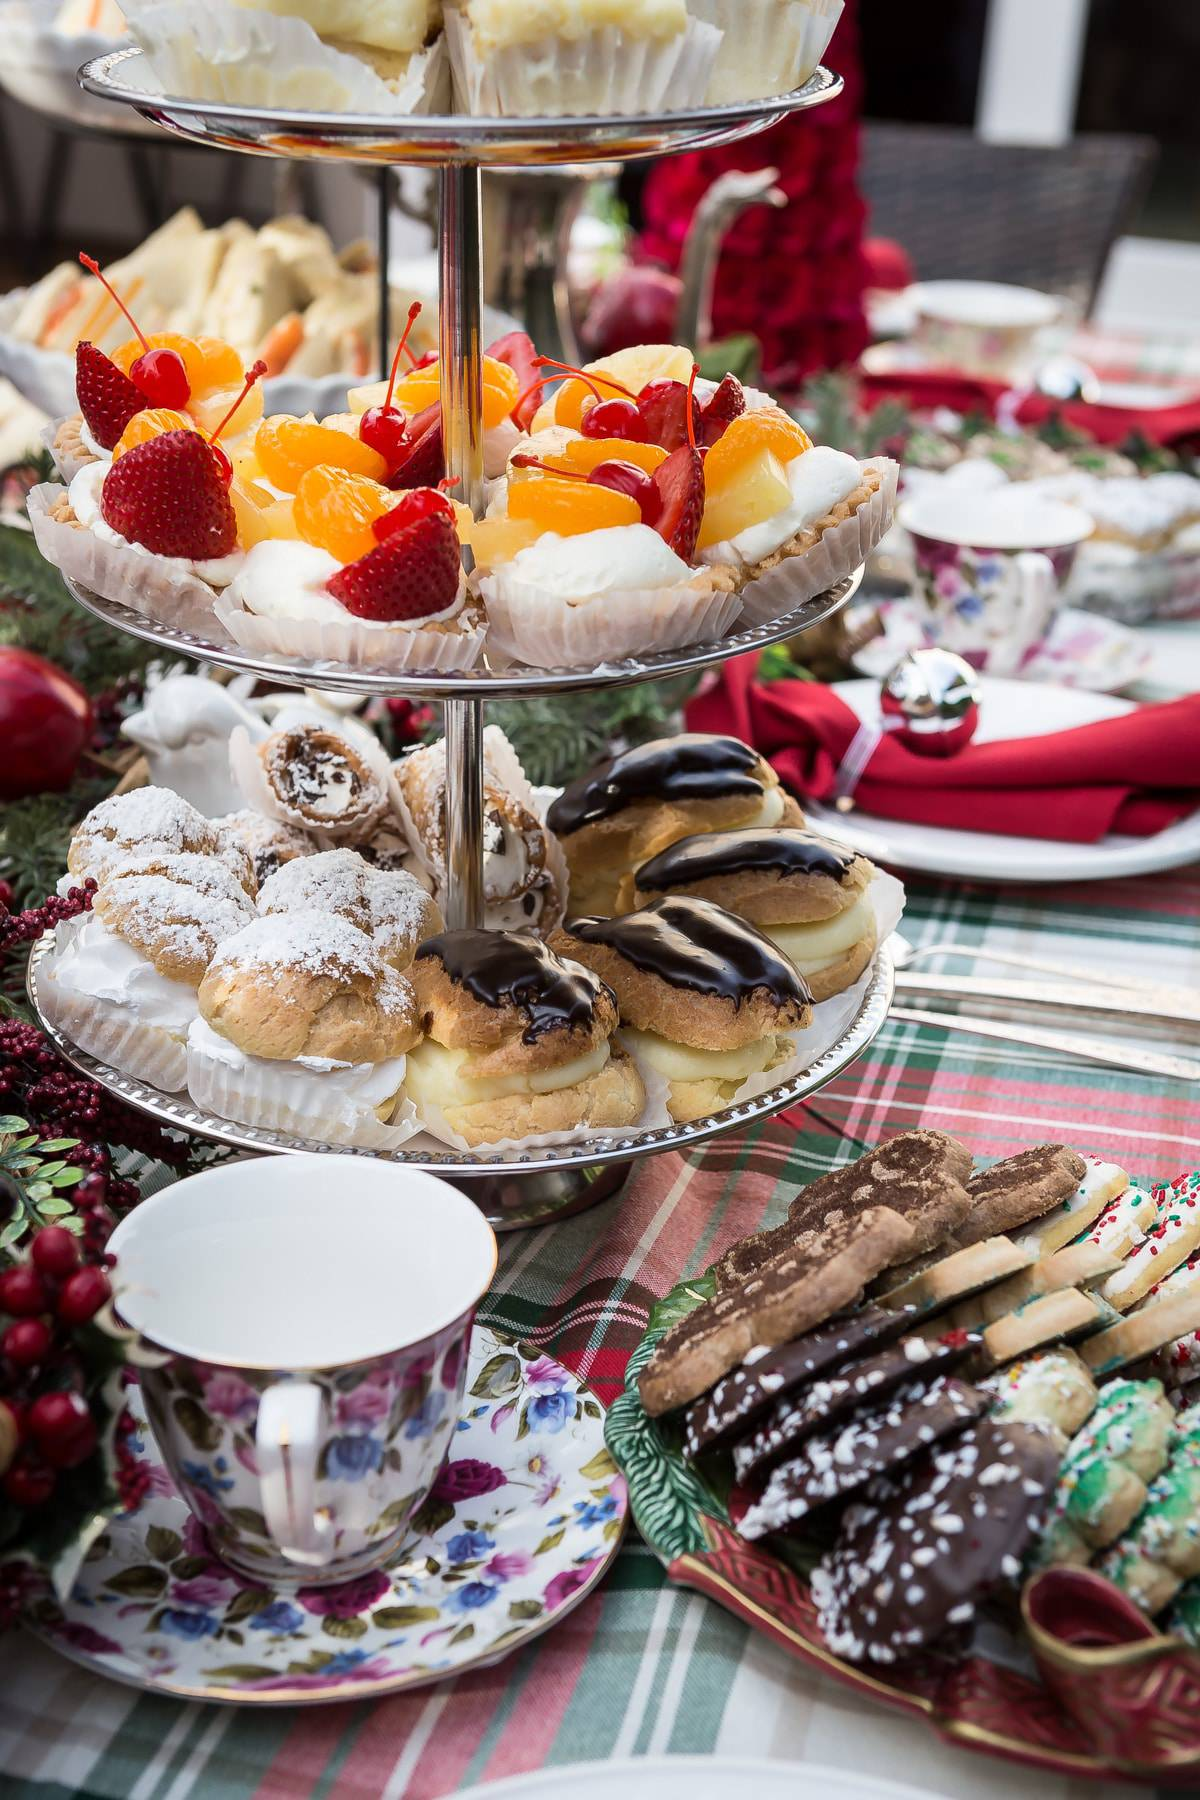 Hosting a traditional English tea party is easier than you think! With mini desserts and finger sandwiches, your guests will have so much fun! @capitalone #SavorMoments #ad